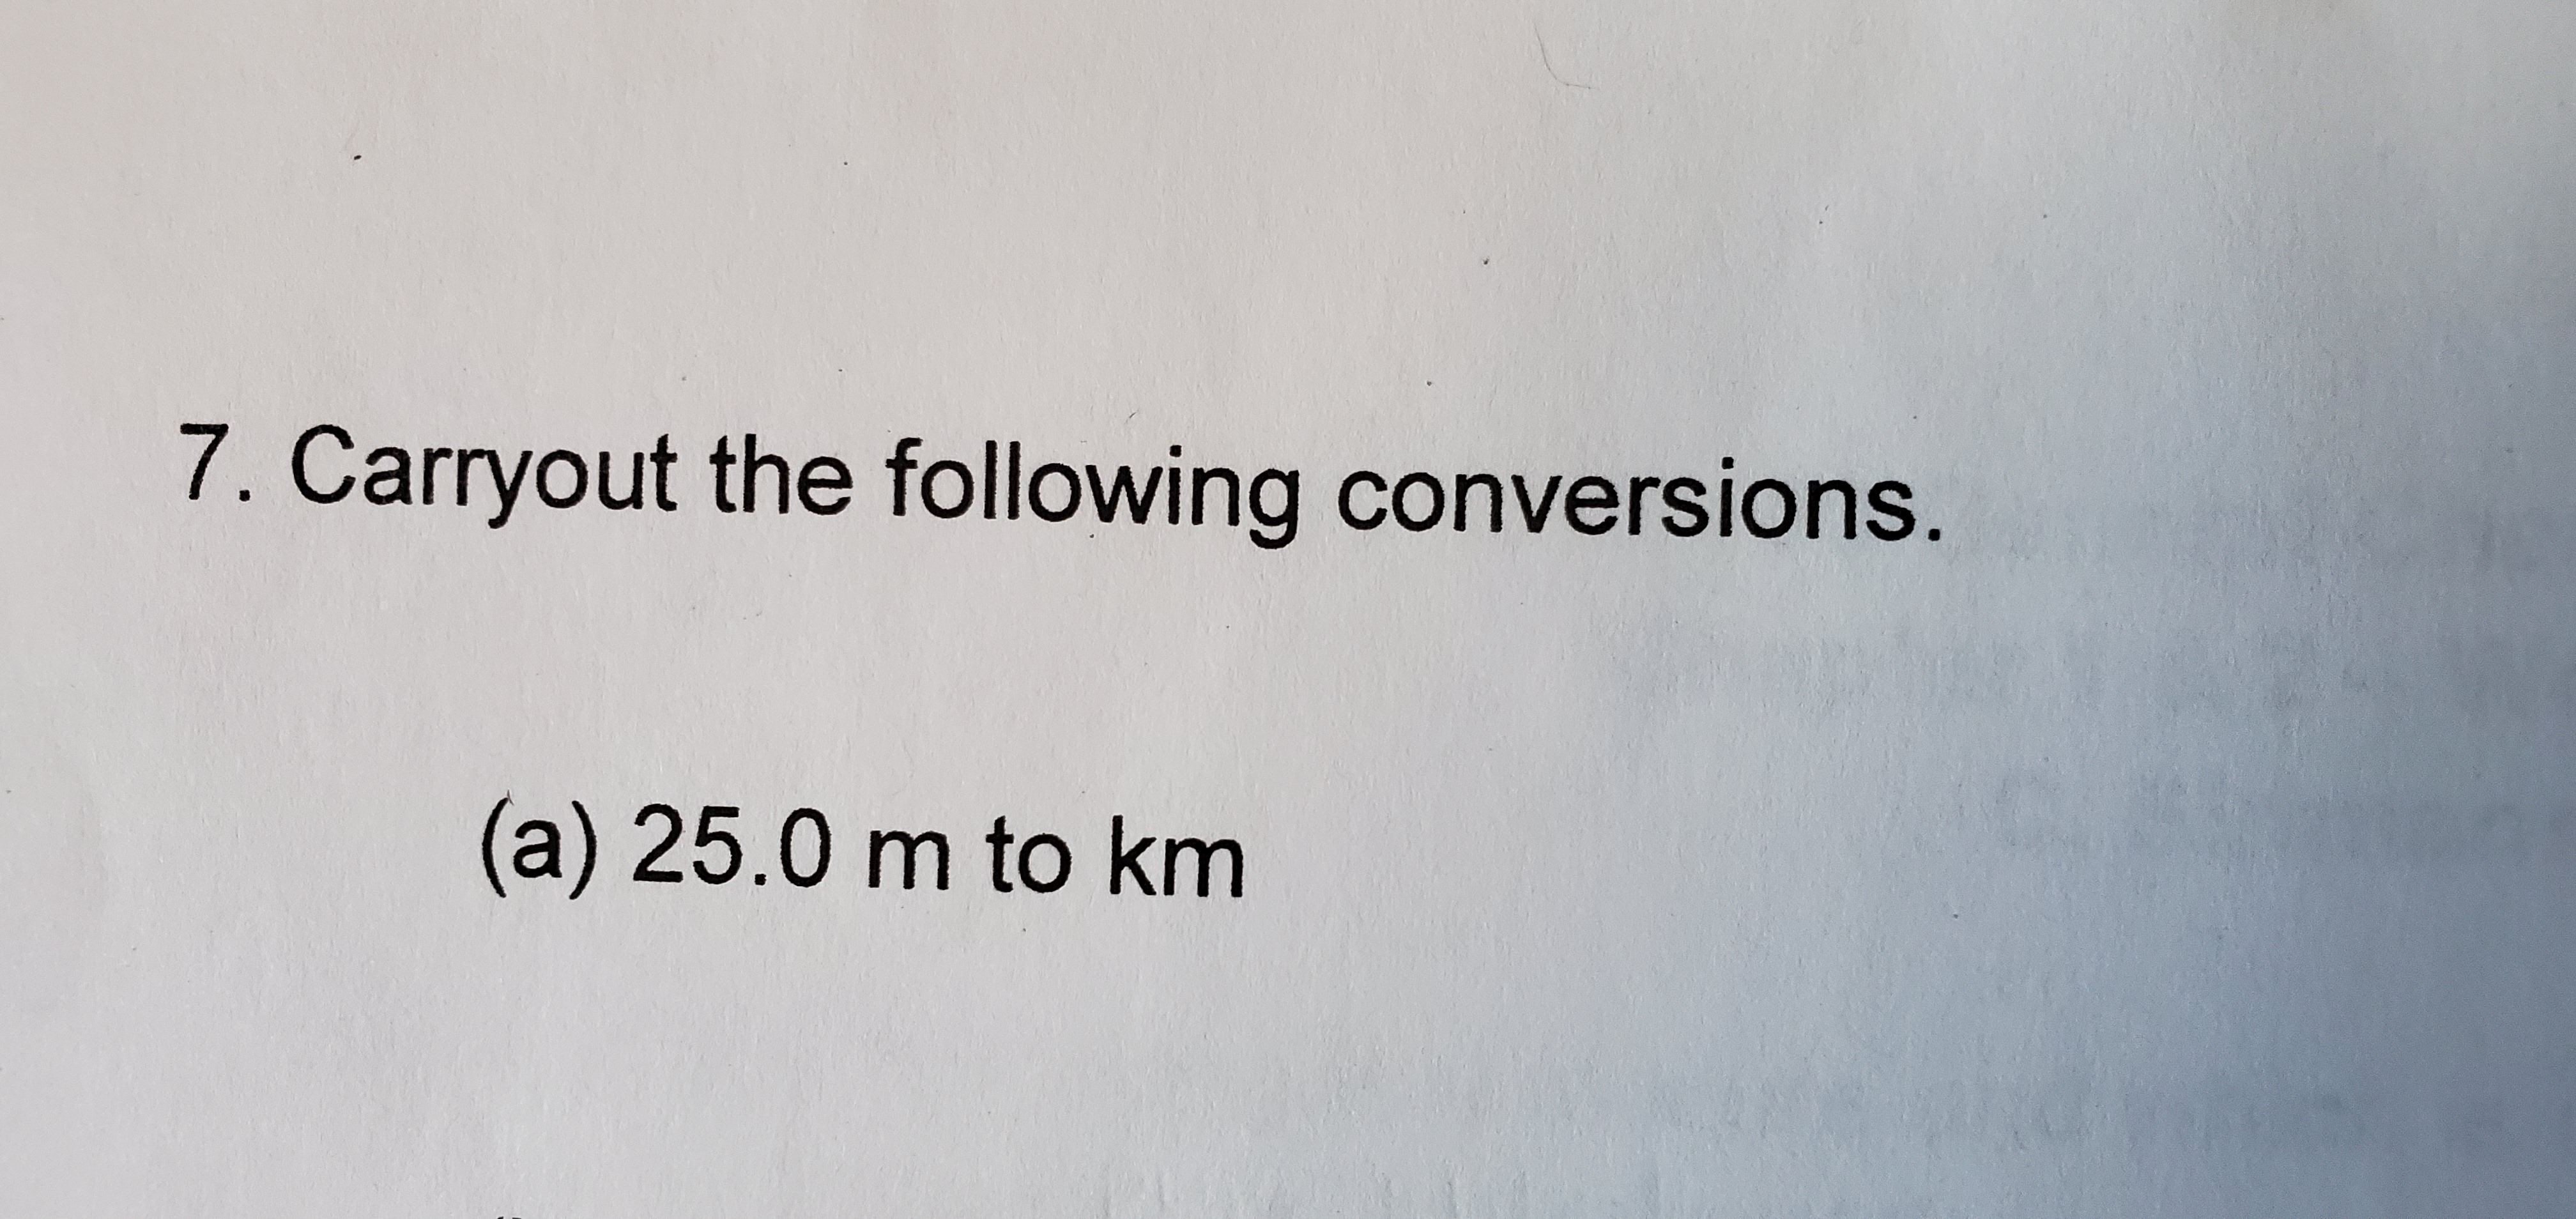 7. Carryout the following conversions. (a) 25.0 m to km